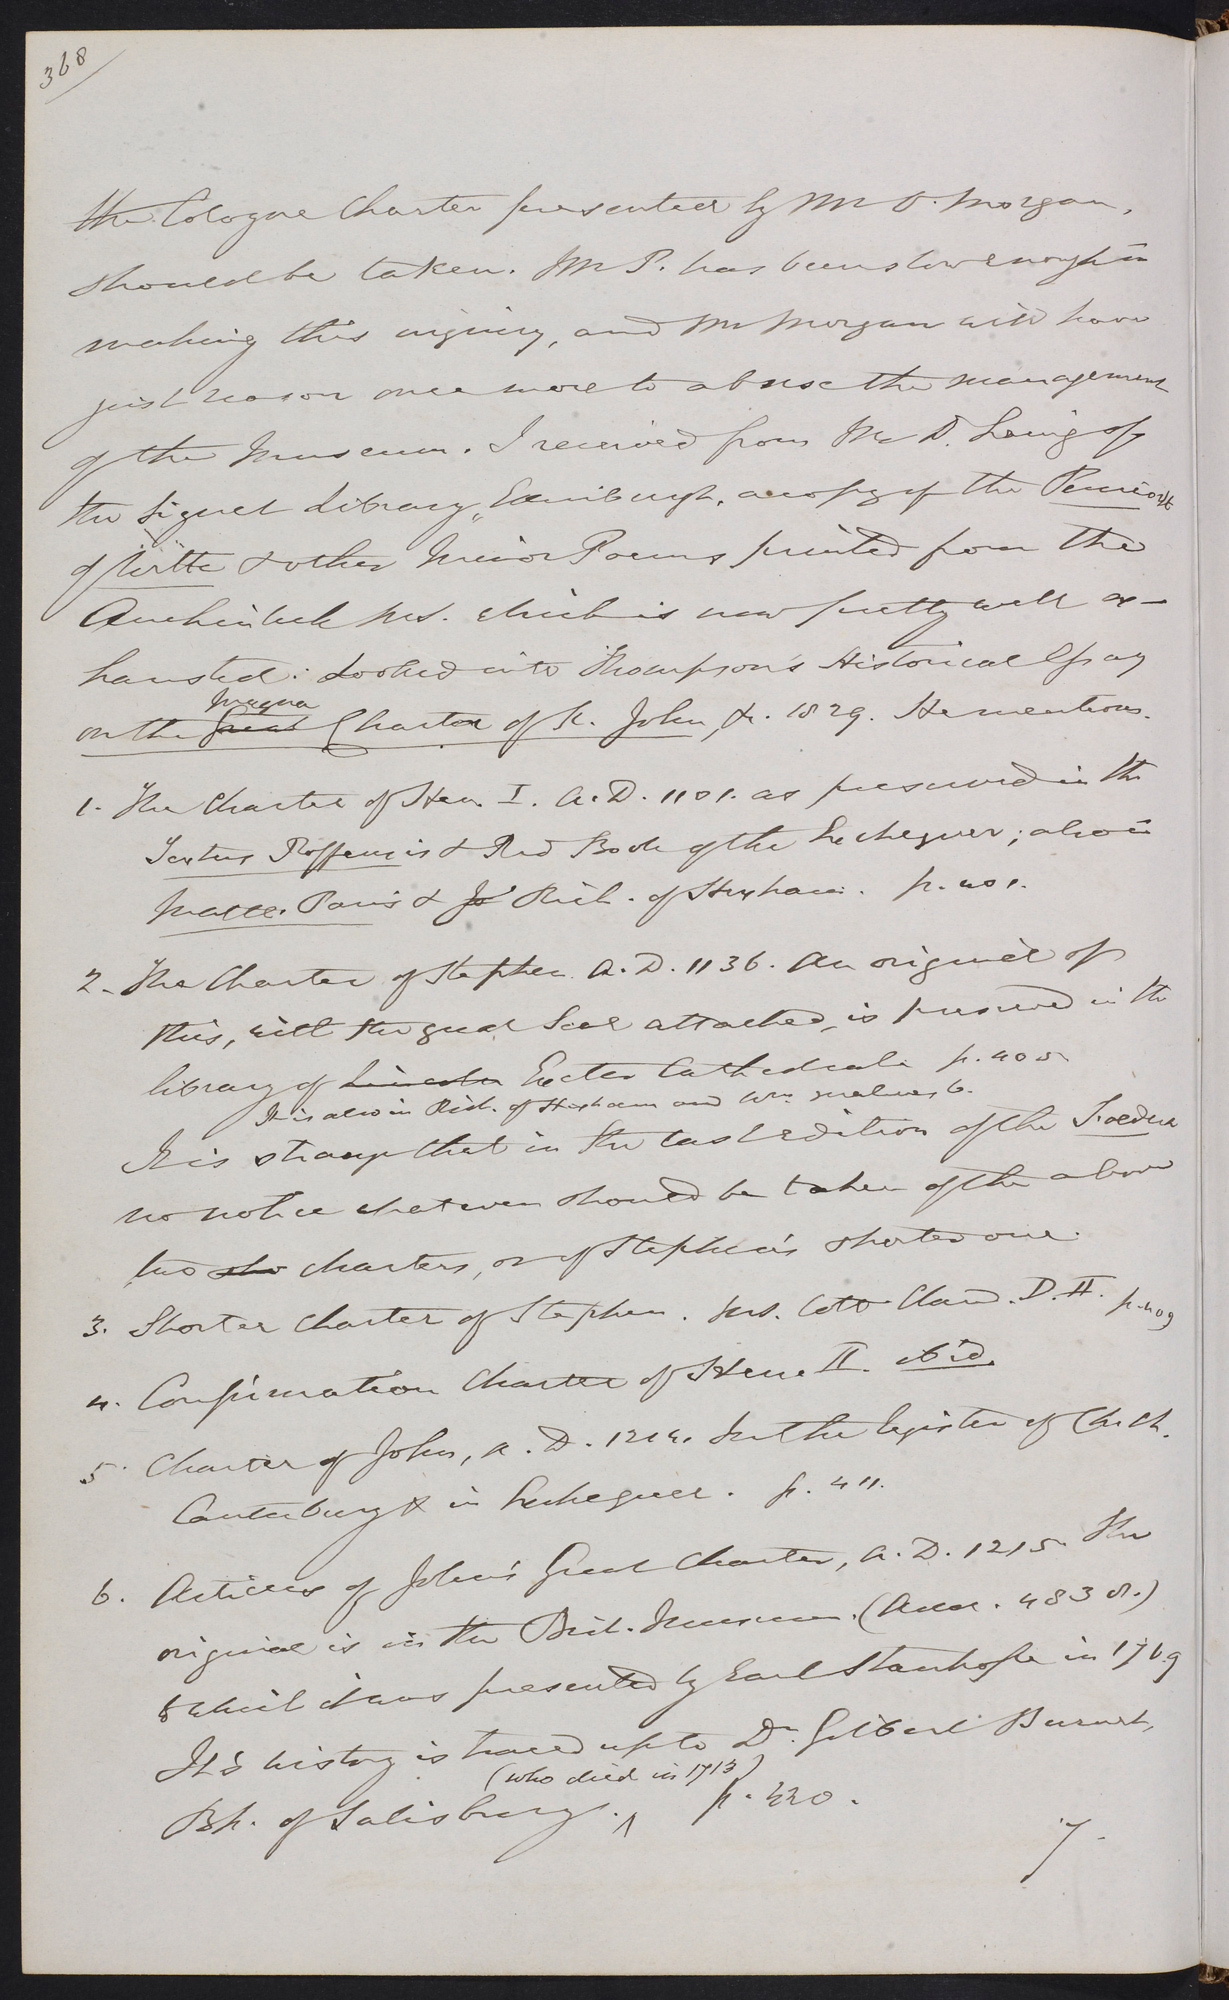 Diary of Sir Frederic Madden, reporting damage to the burnt Magna Carta